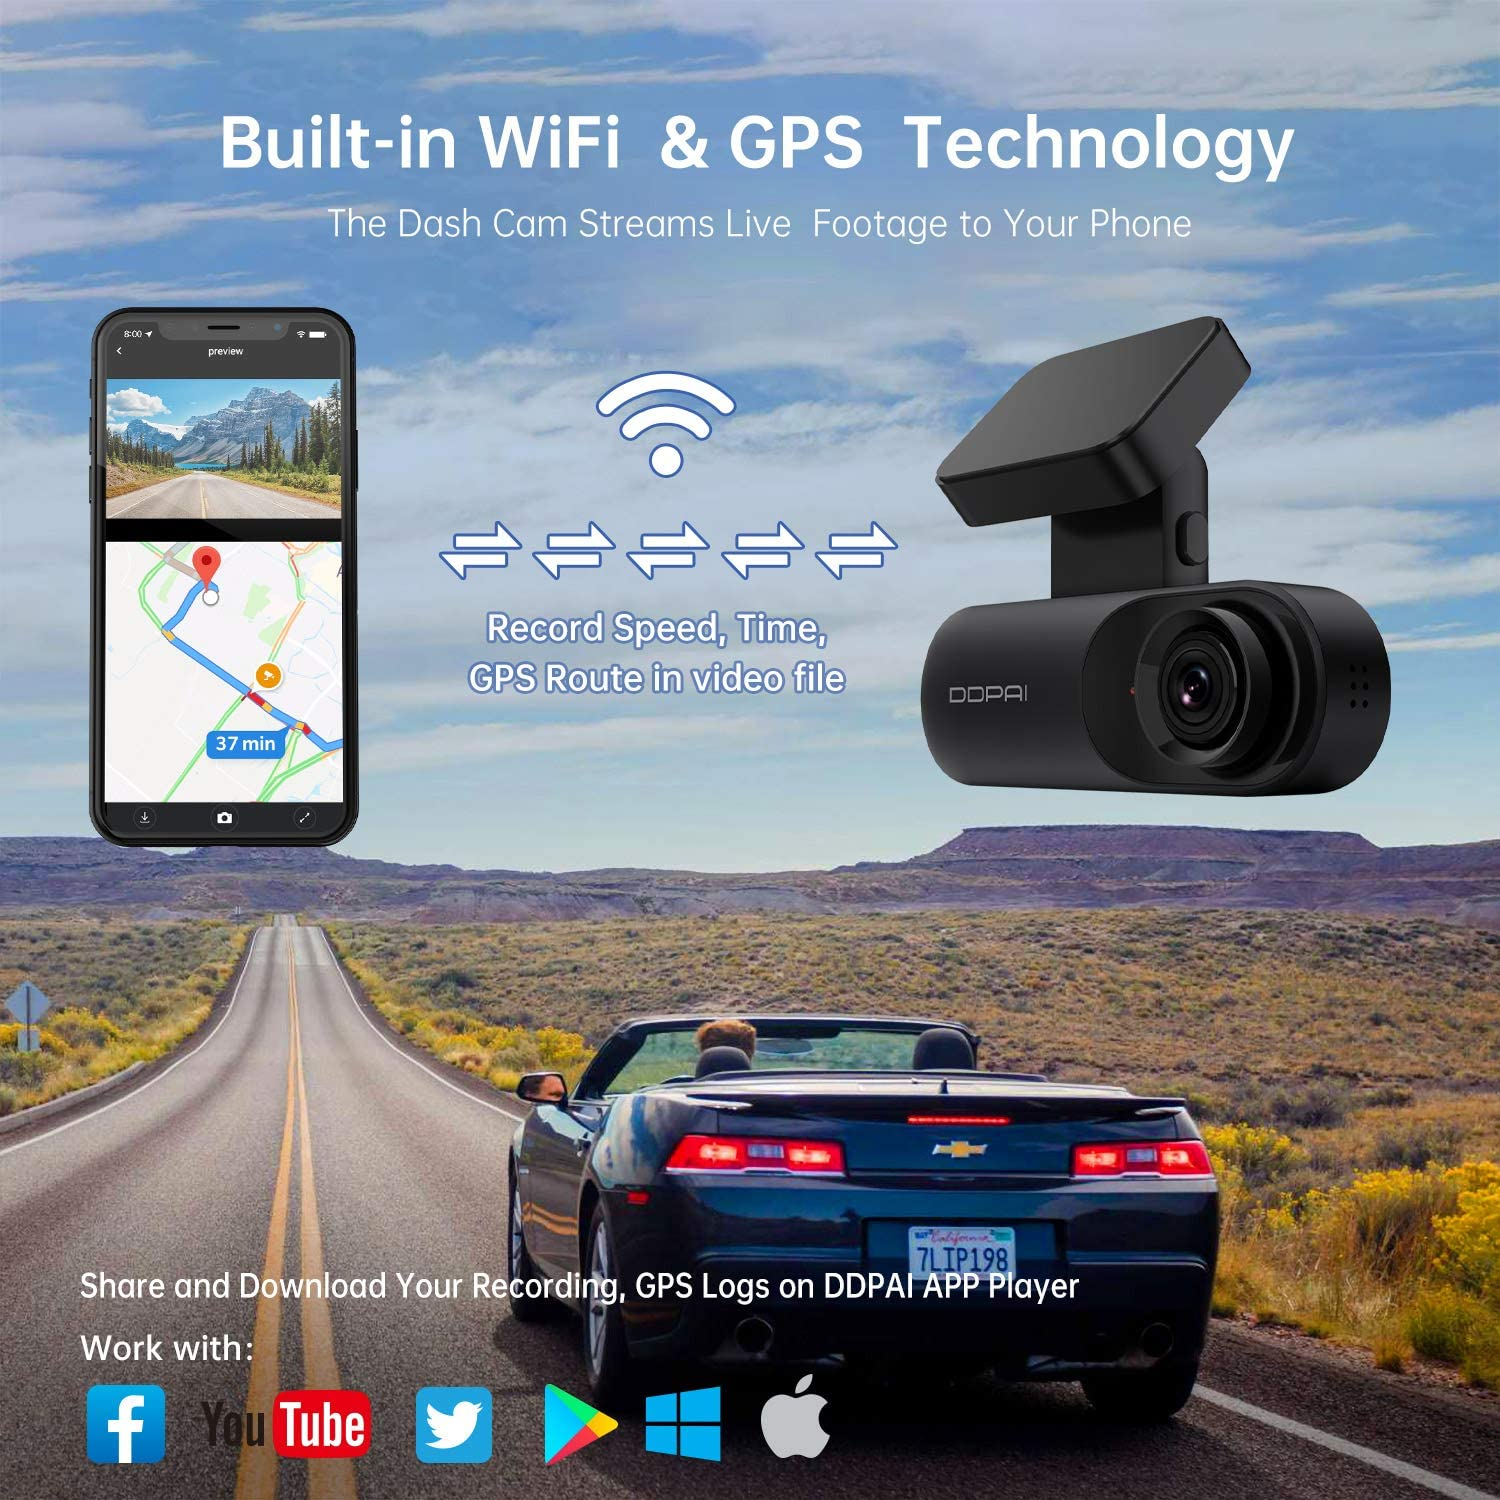 DDPAI Mola N3 Dash Cam App /& Wi-Fi| Support 128GB max 1600P Front Dash Cam 2K Dash Cam Recorder Single Front Dashboard Camera for Car| Infrared Night Vision |24hr Motion Sensor Parking Mode